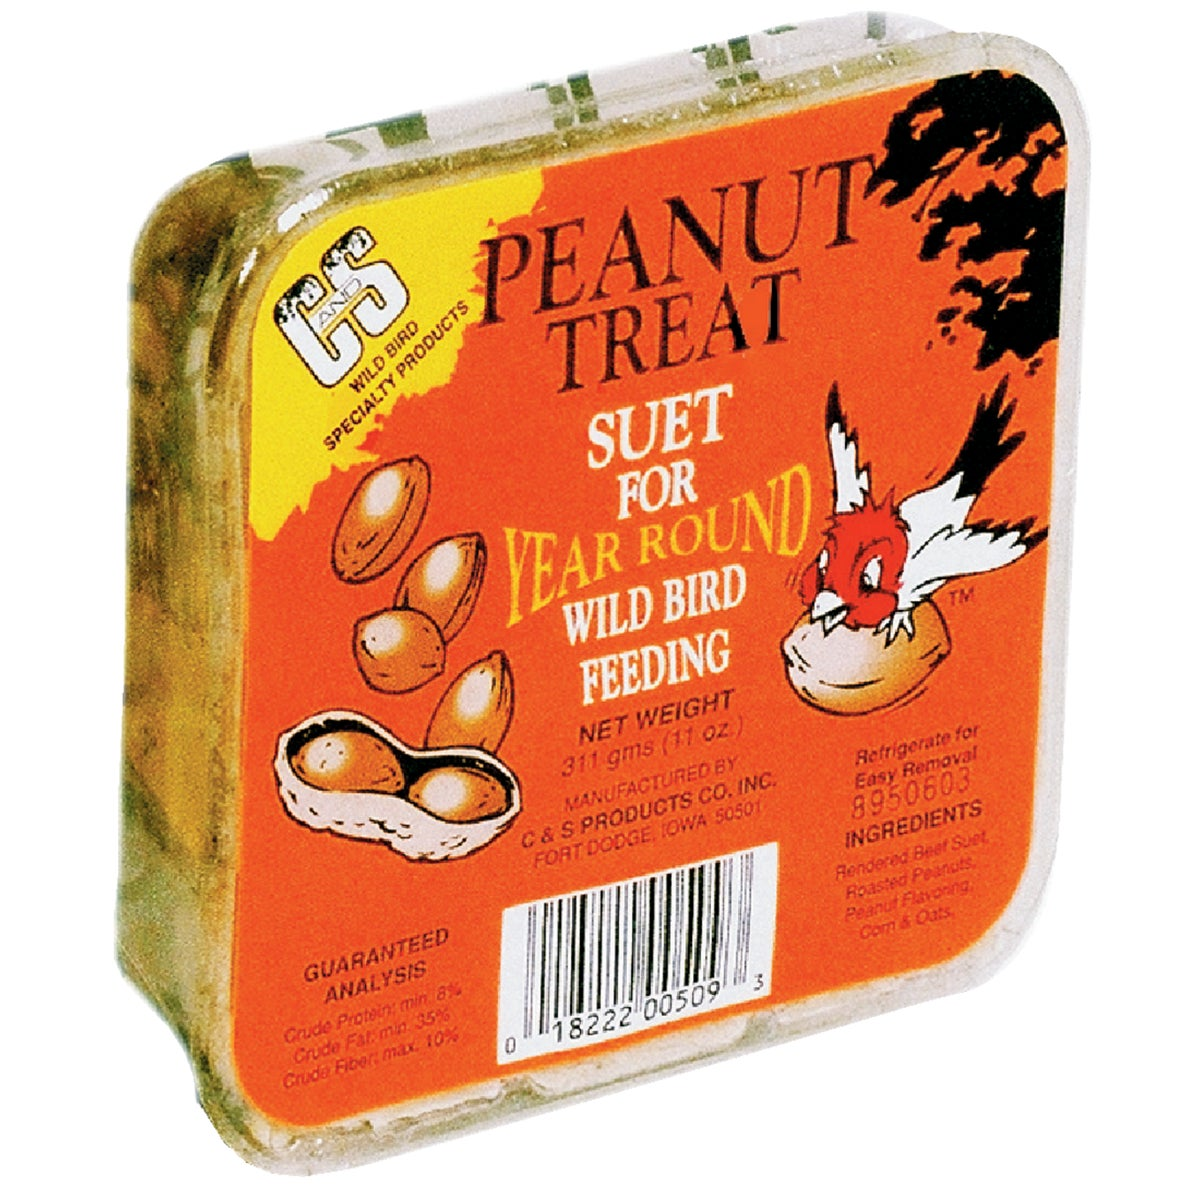 PEANUT TREAT SUET - 12509 by C & S Products Inc